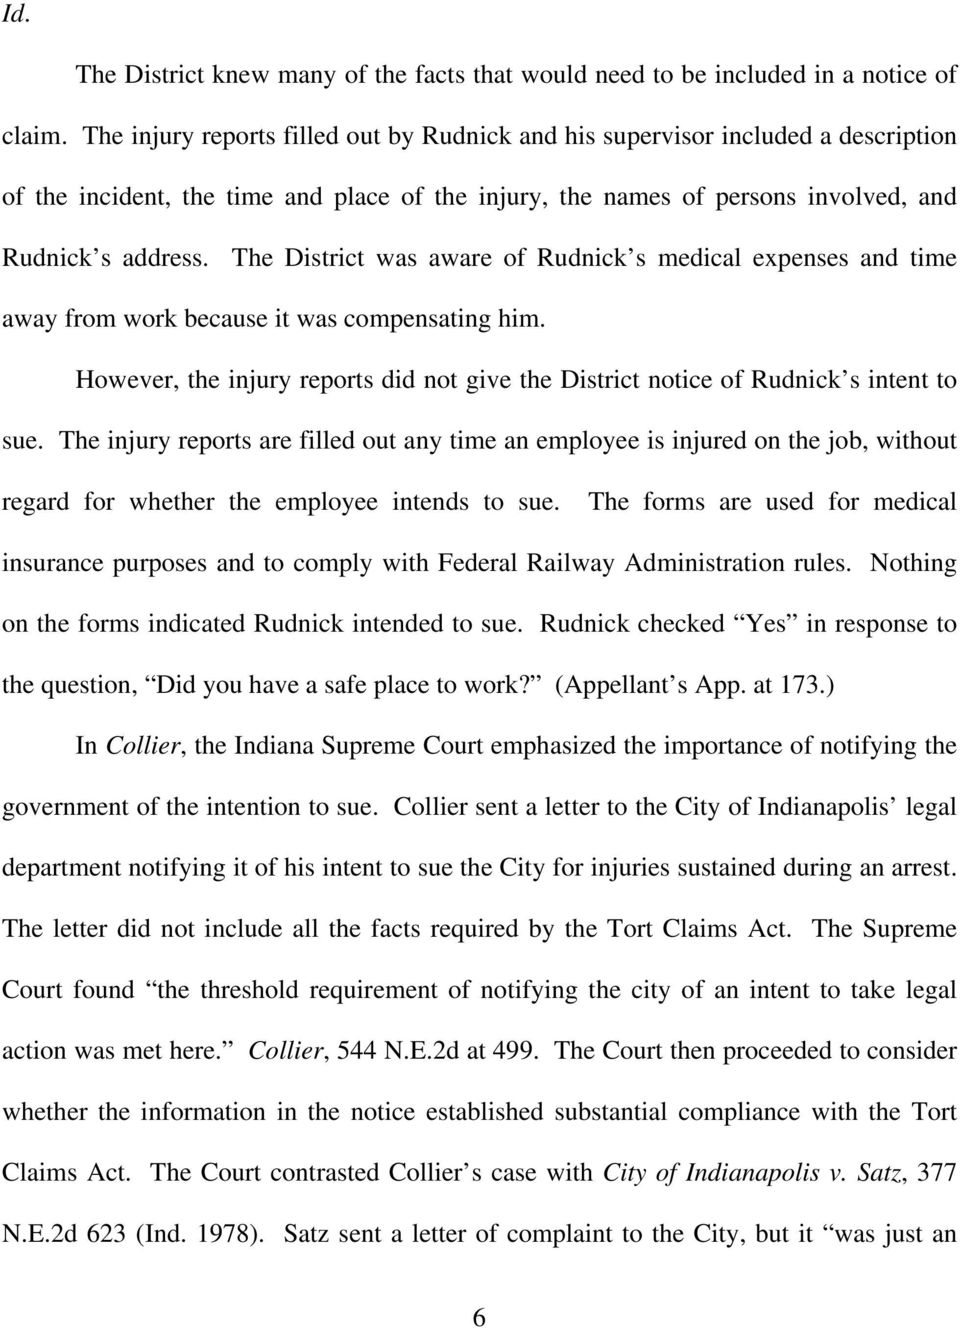 The District was aware of Rudnick s medical expenses and time away from work because it was compensating him. However, the injury reports did not give the District notice of Rudnick s intent to sue.